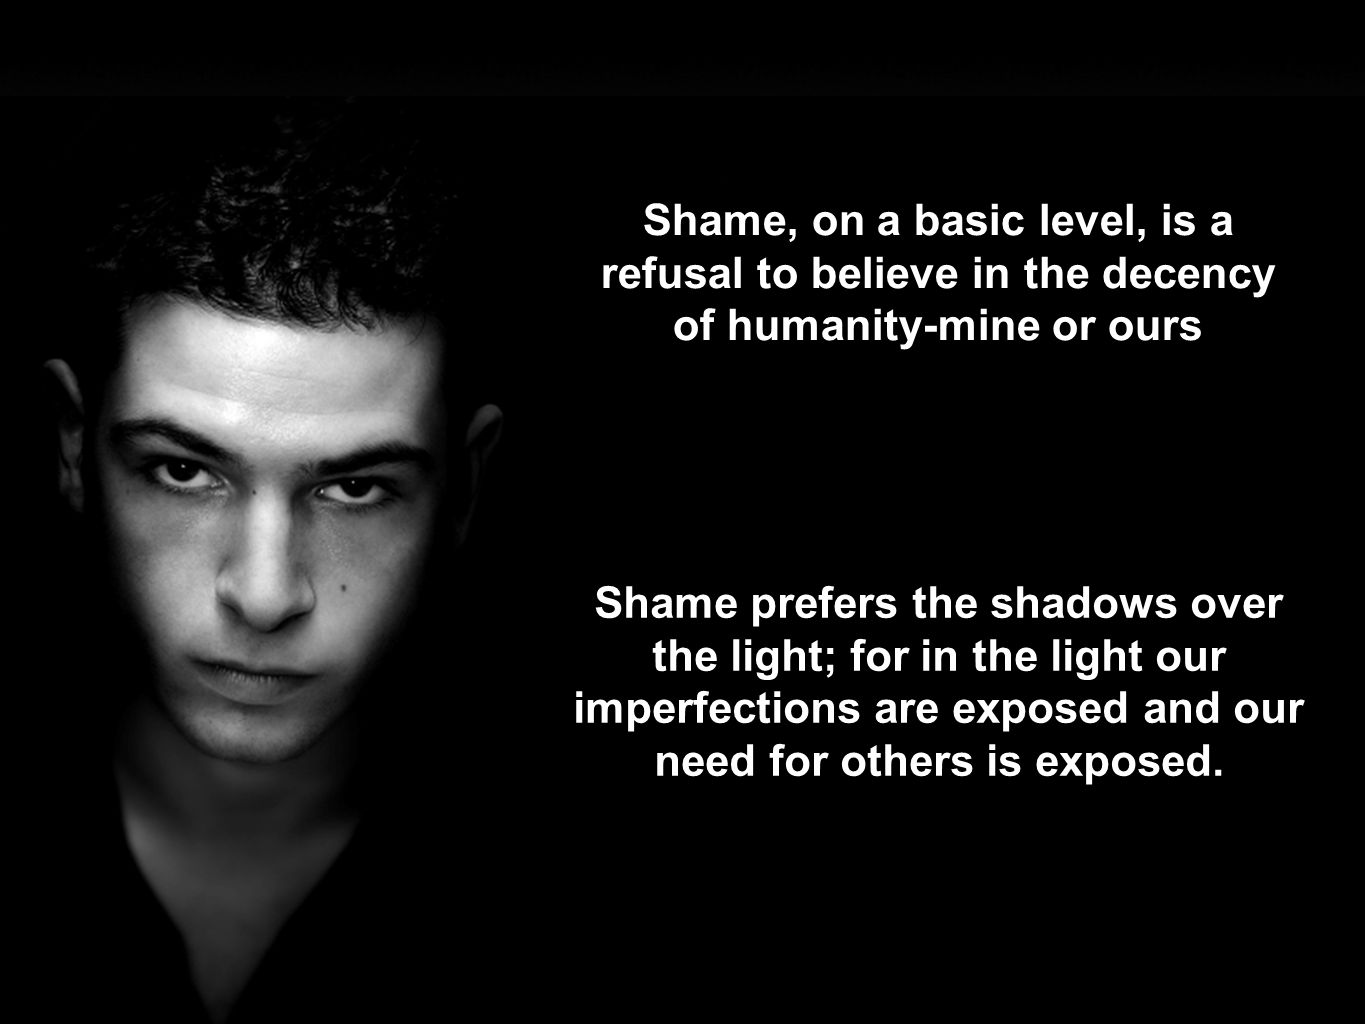 Shame prefers the shadows over the light; for in the light our imperfections are exposed and our need for others is exposed.